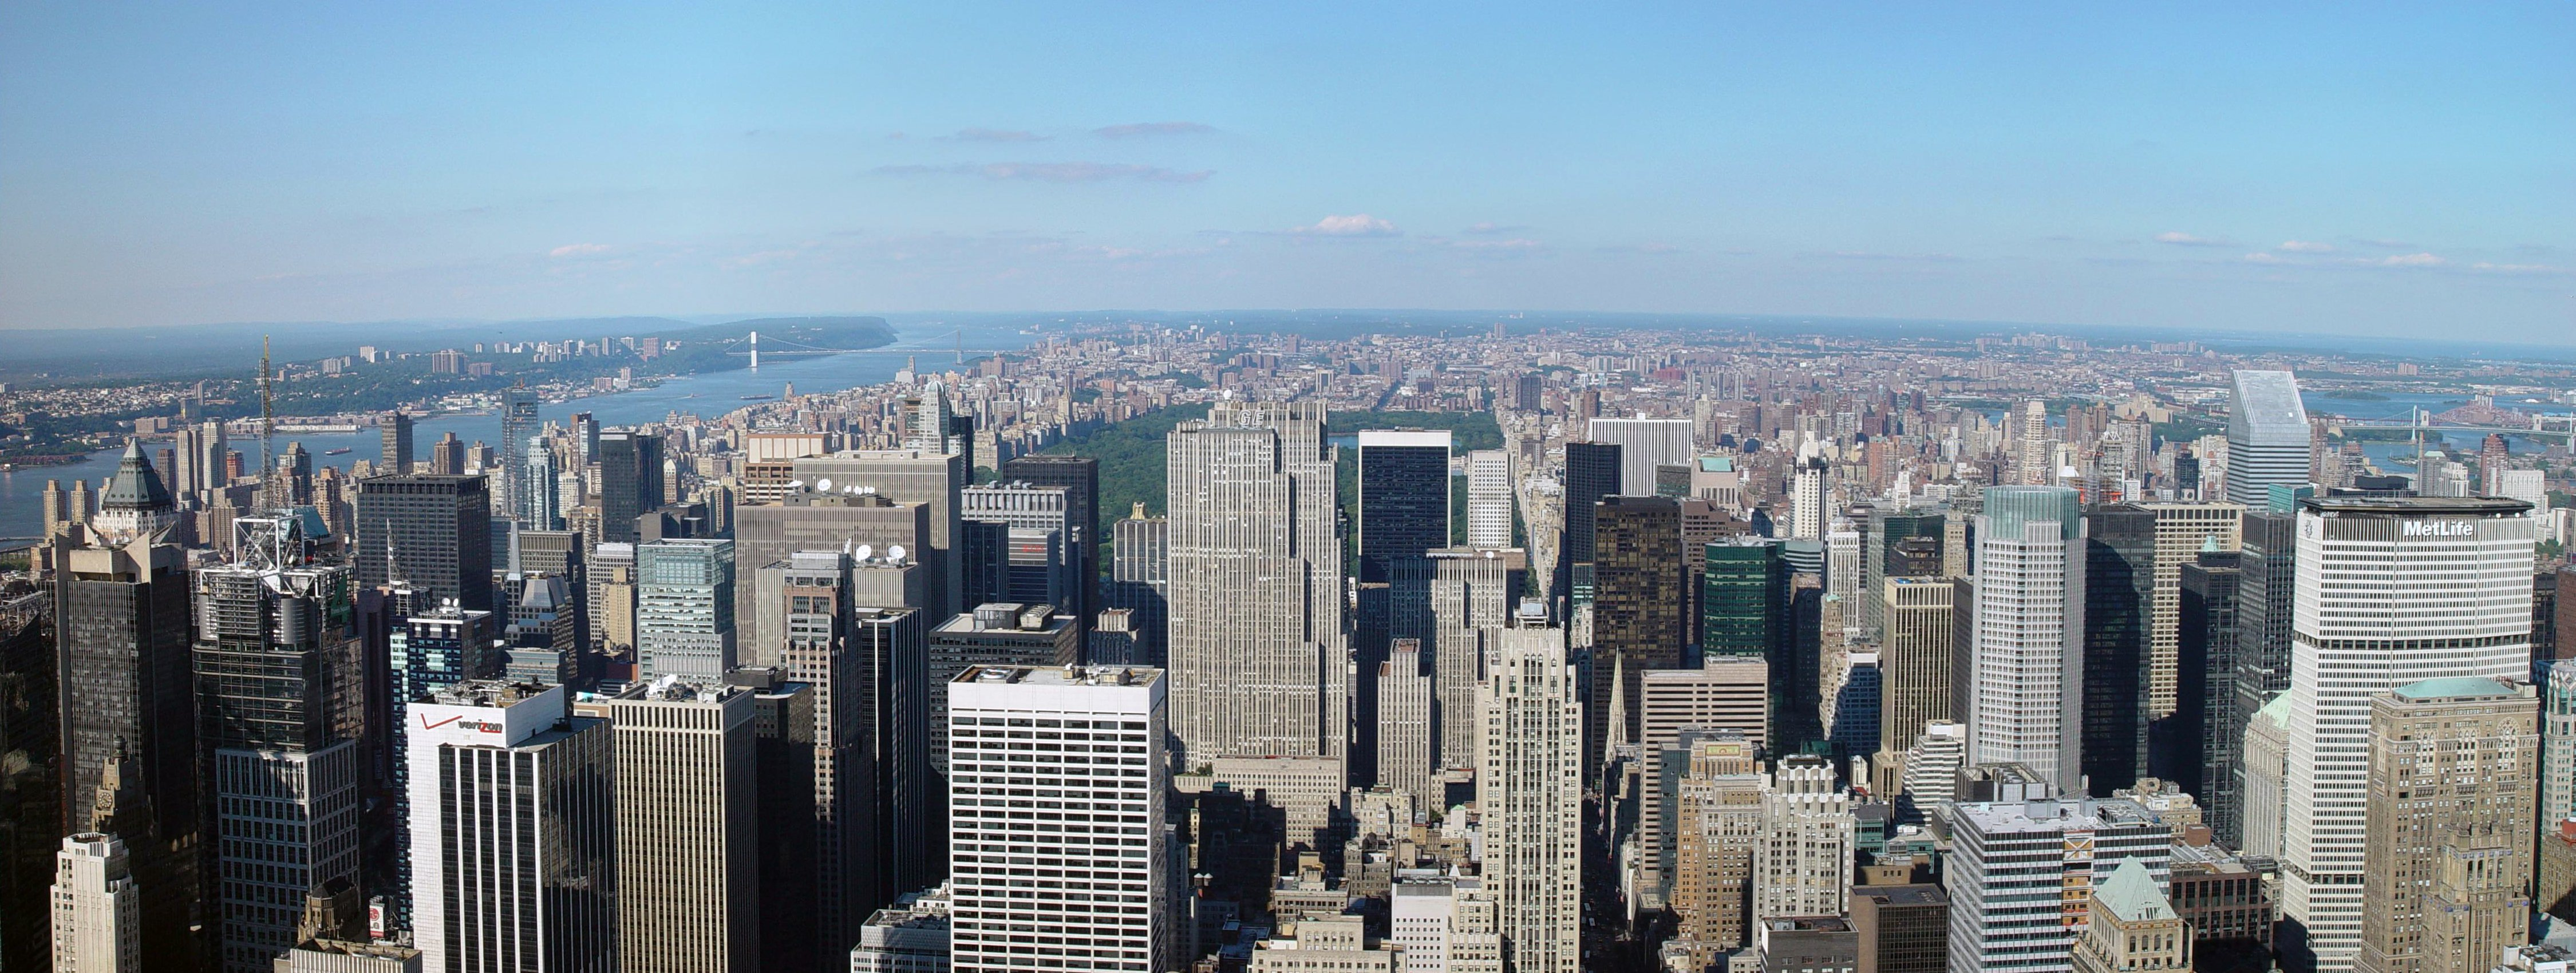 manhattan north from the - photo #15